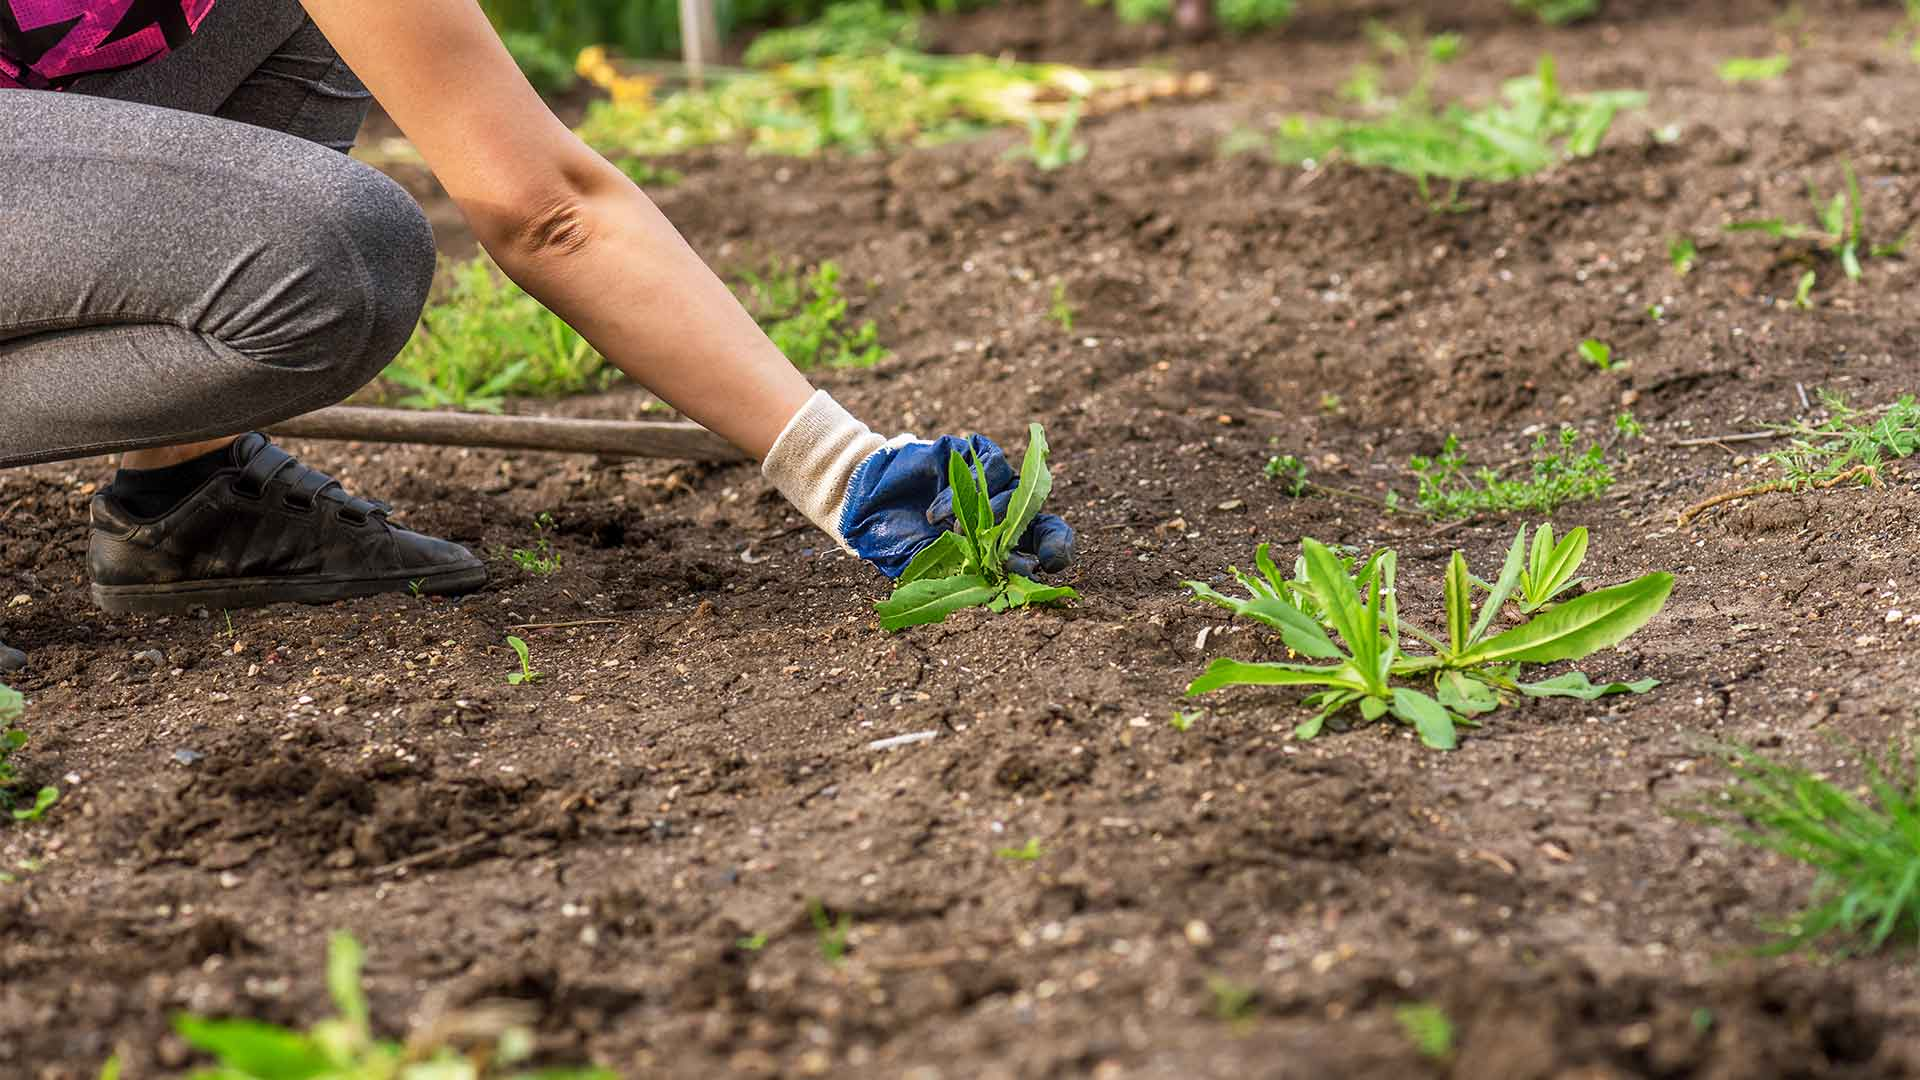 Weed control services in Lunenburg, MA and other surrounding areas.